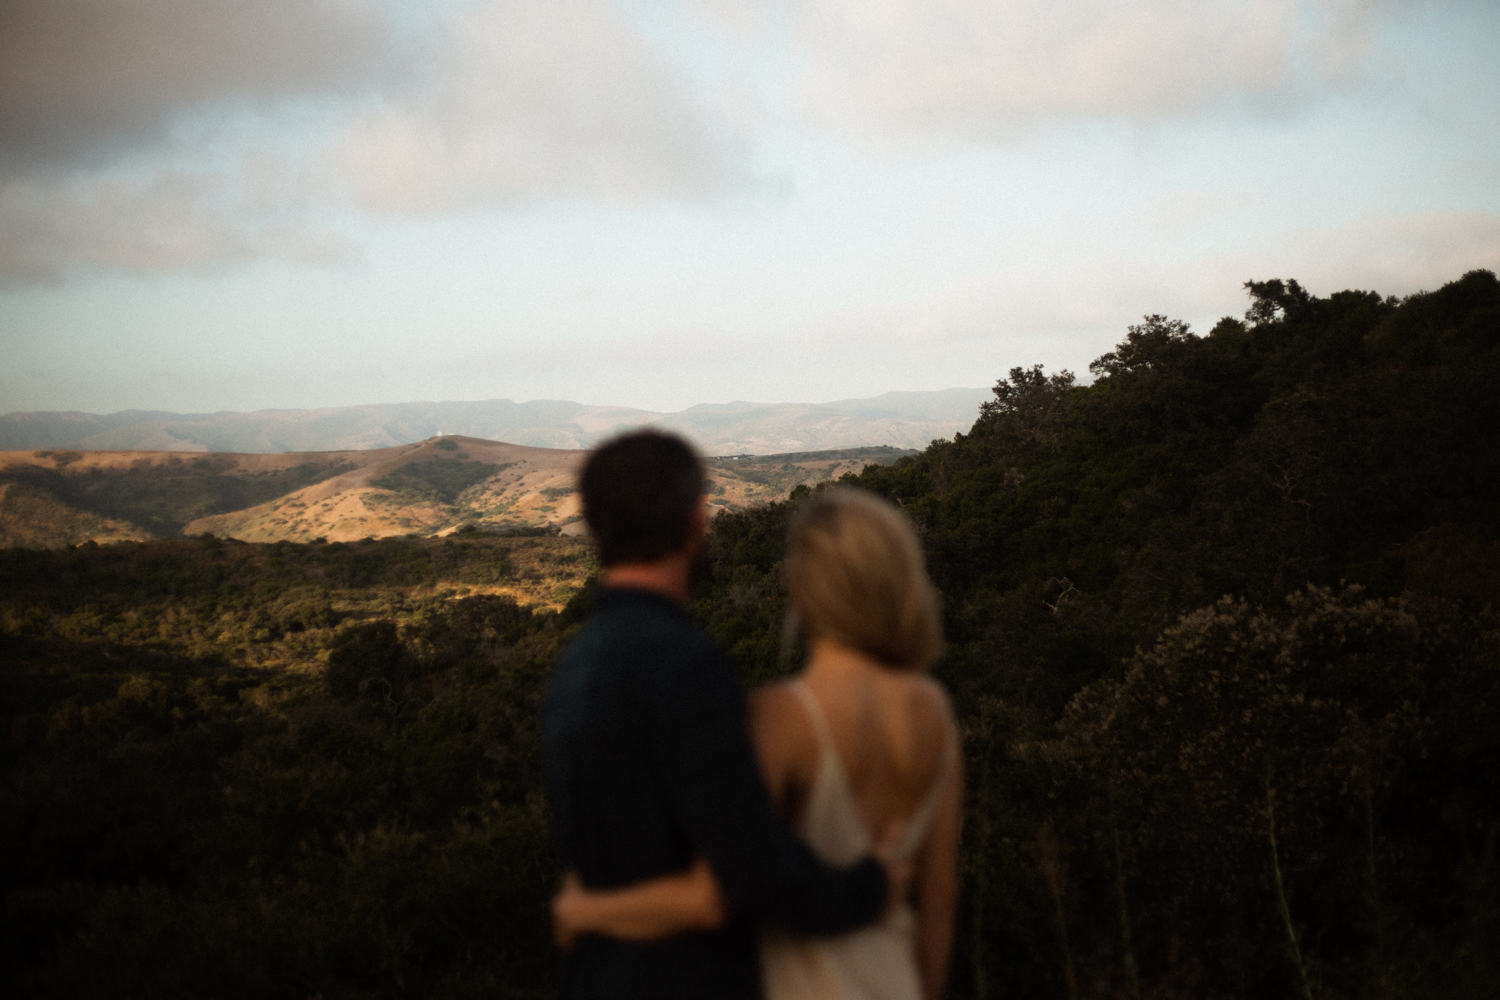 Engagement session shoot photos photography Orange County photographer nature film Talega Home session California38.jpg